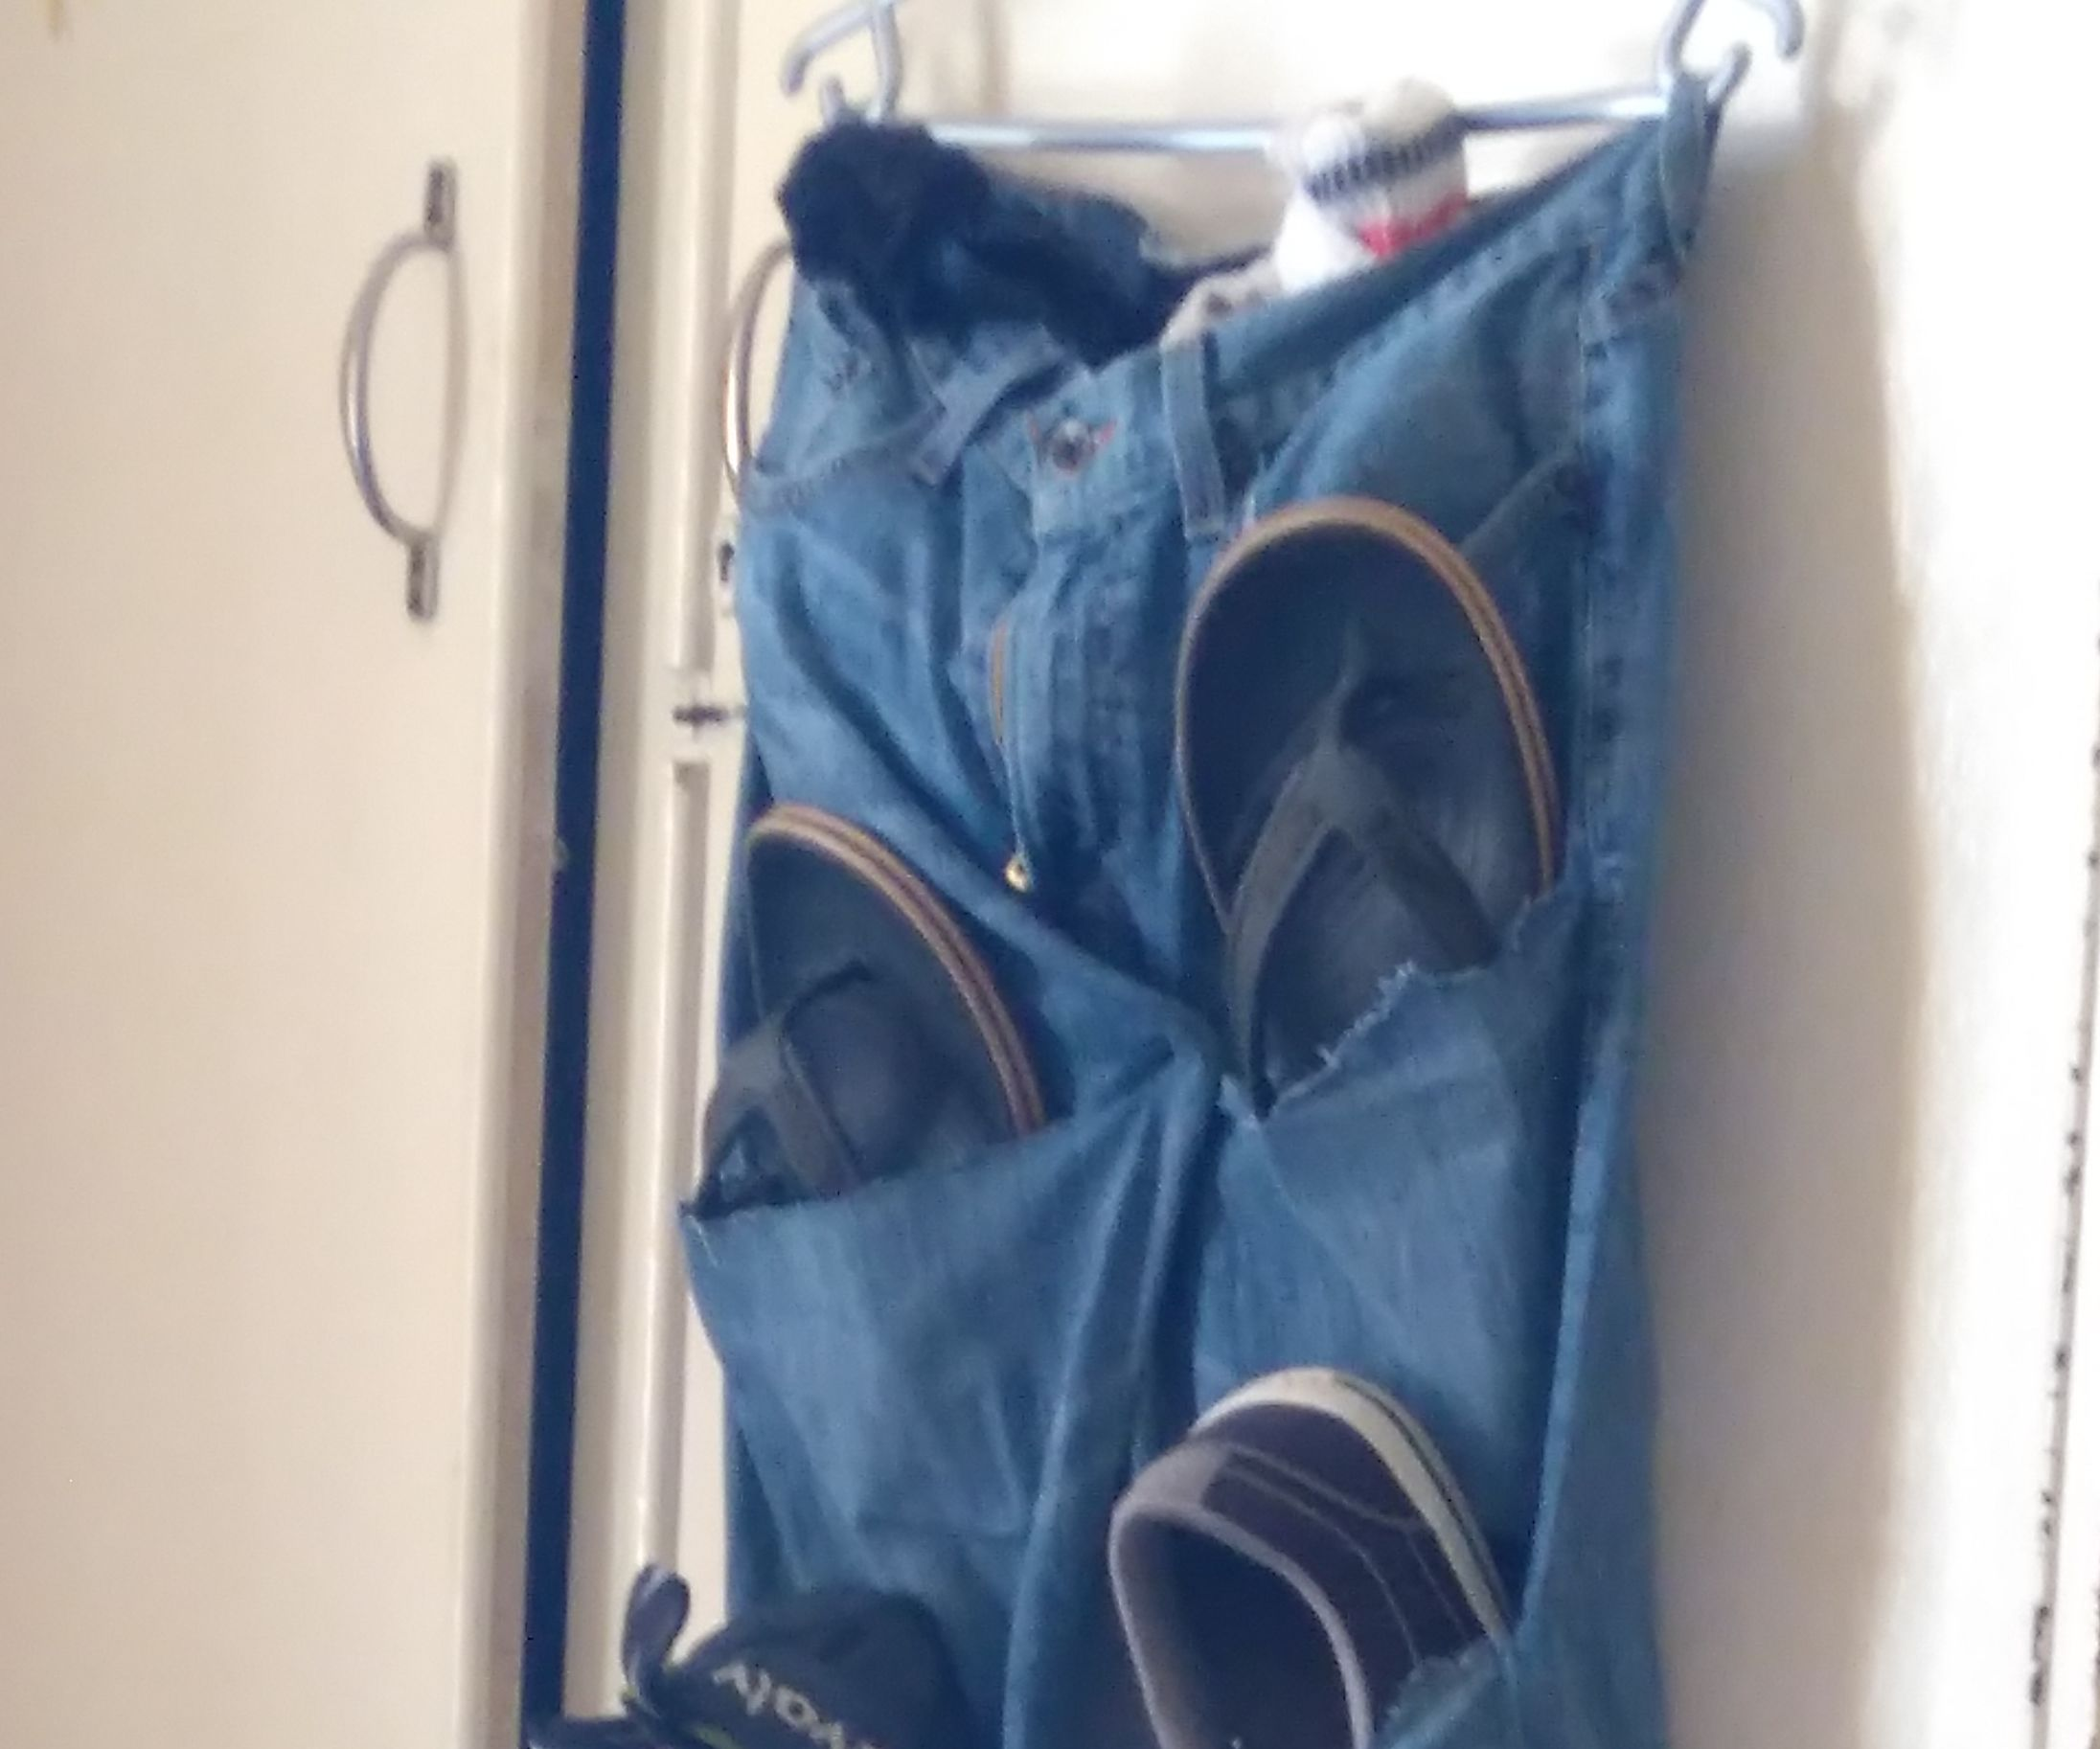 Old Jeans to Shoe Storage